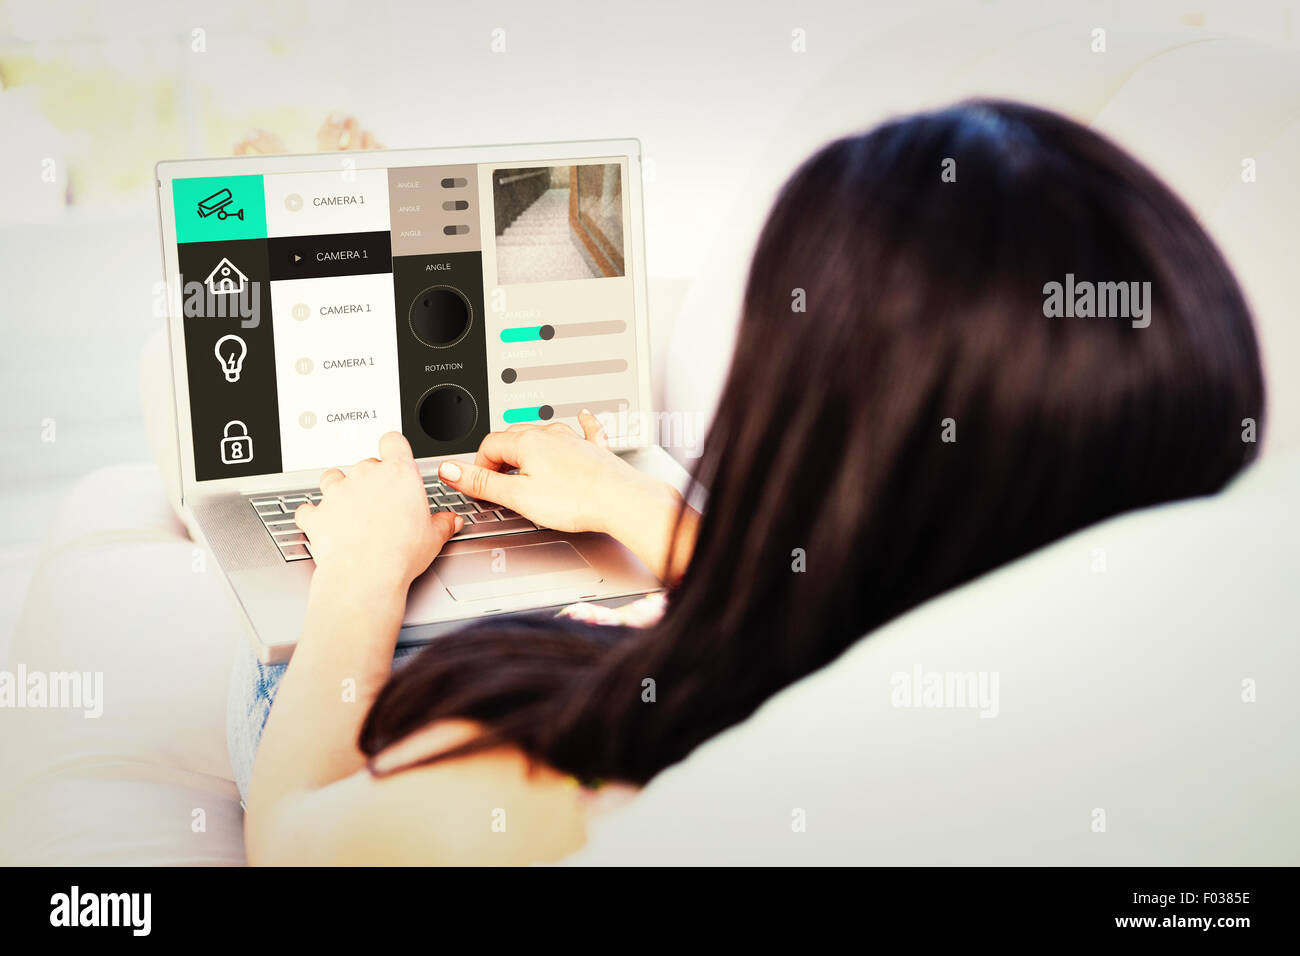 Composite image of home automation system - Stock Image